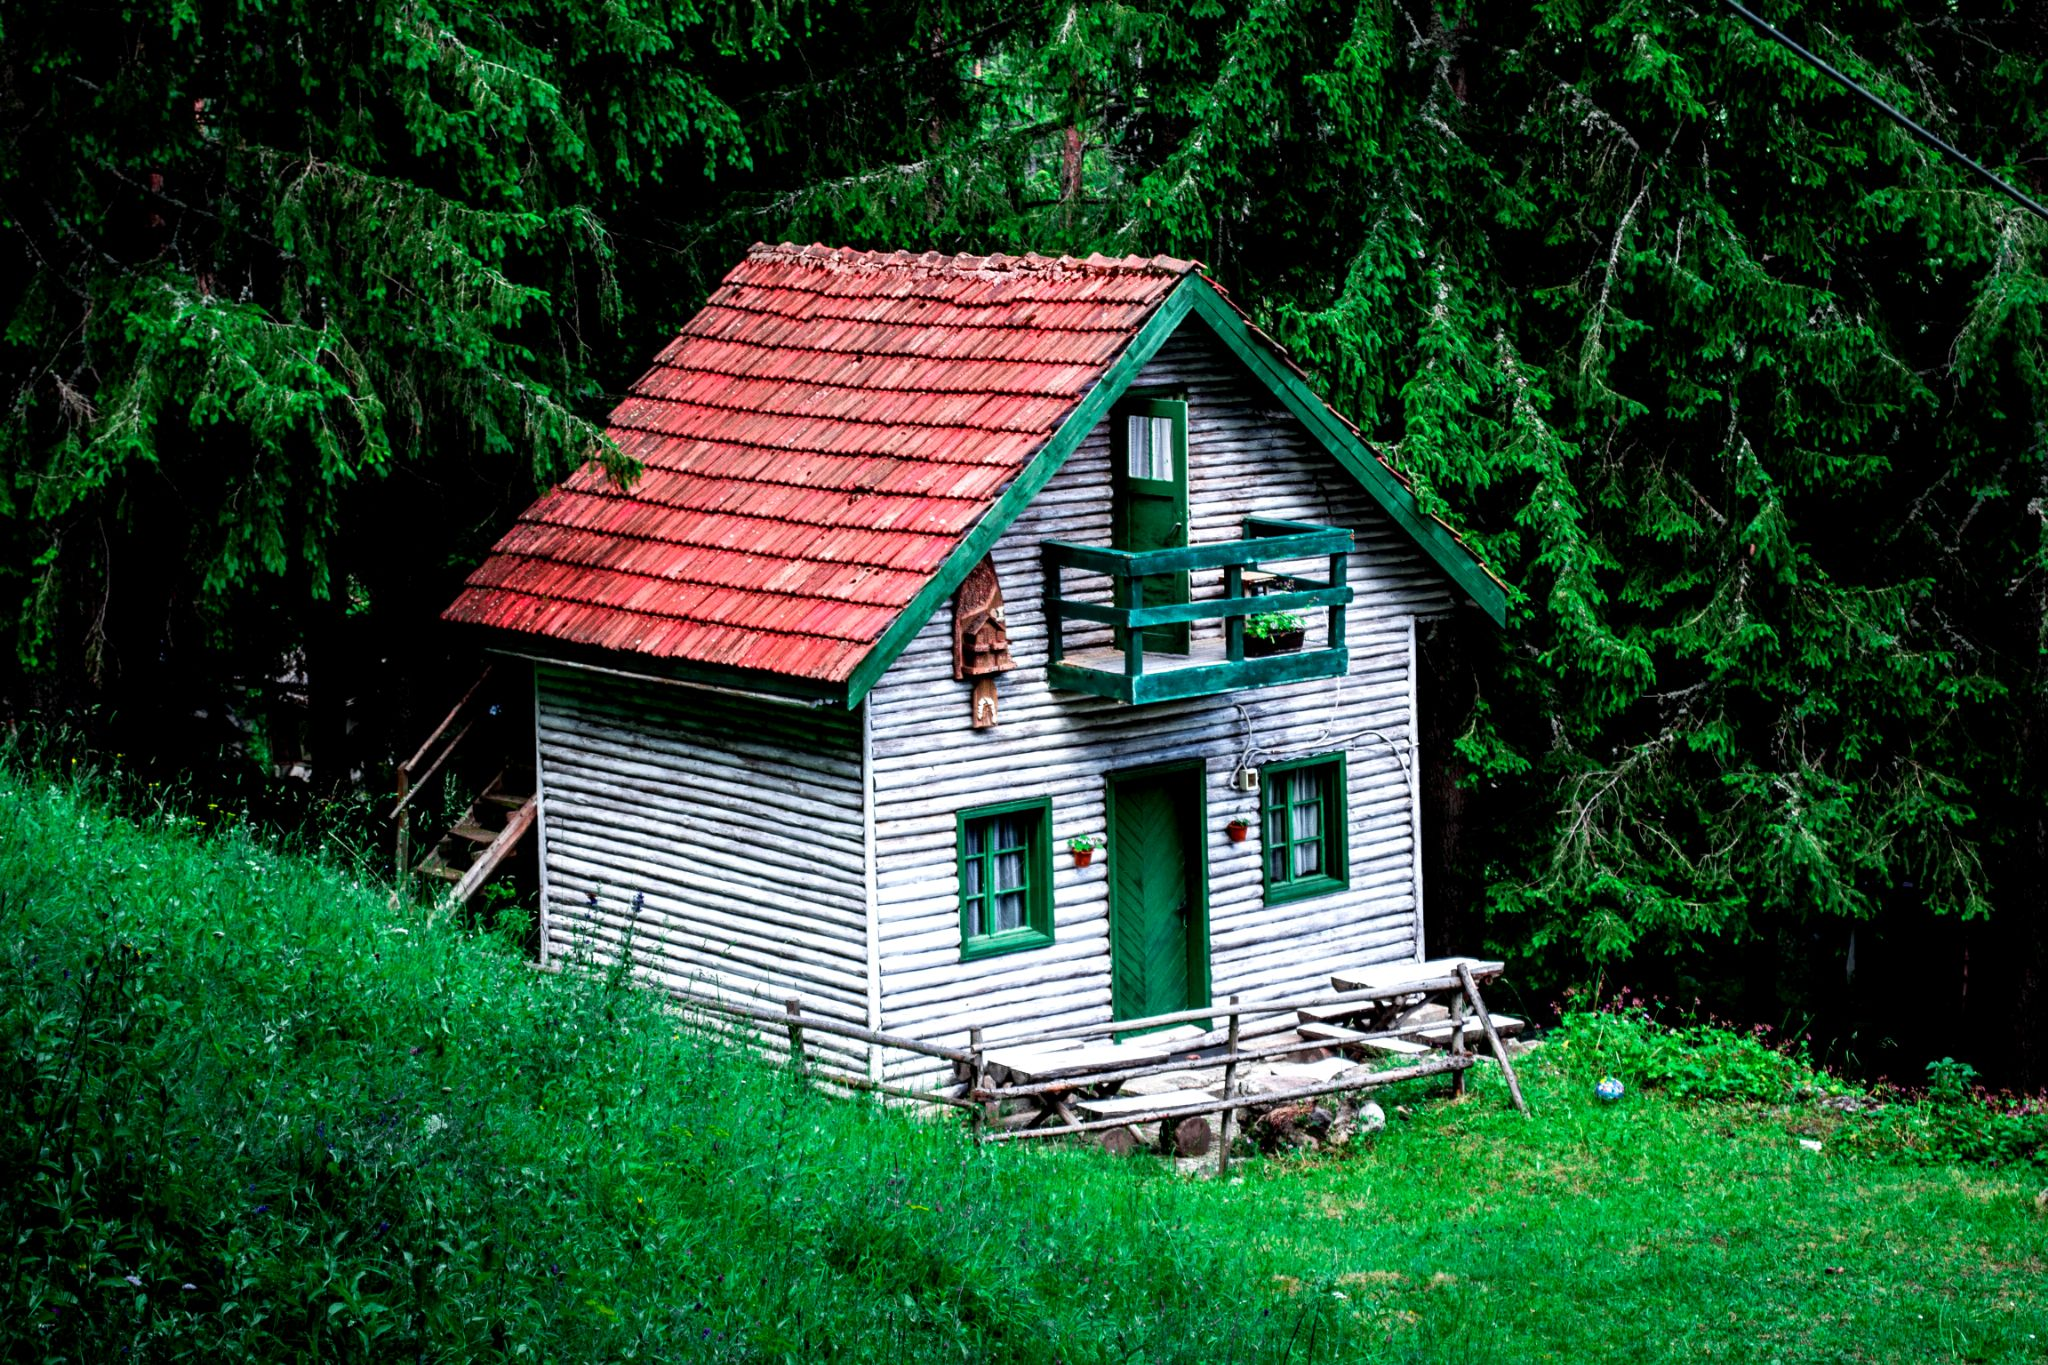 House in forest by Emil Topalov